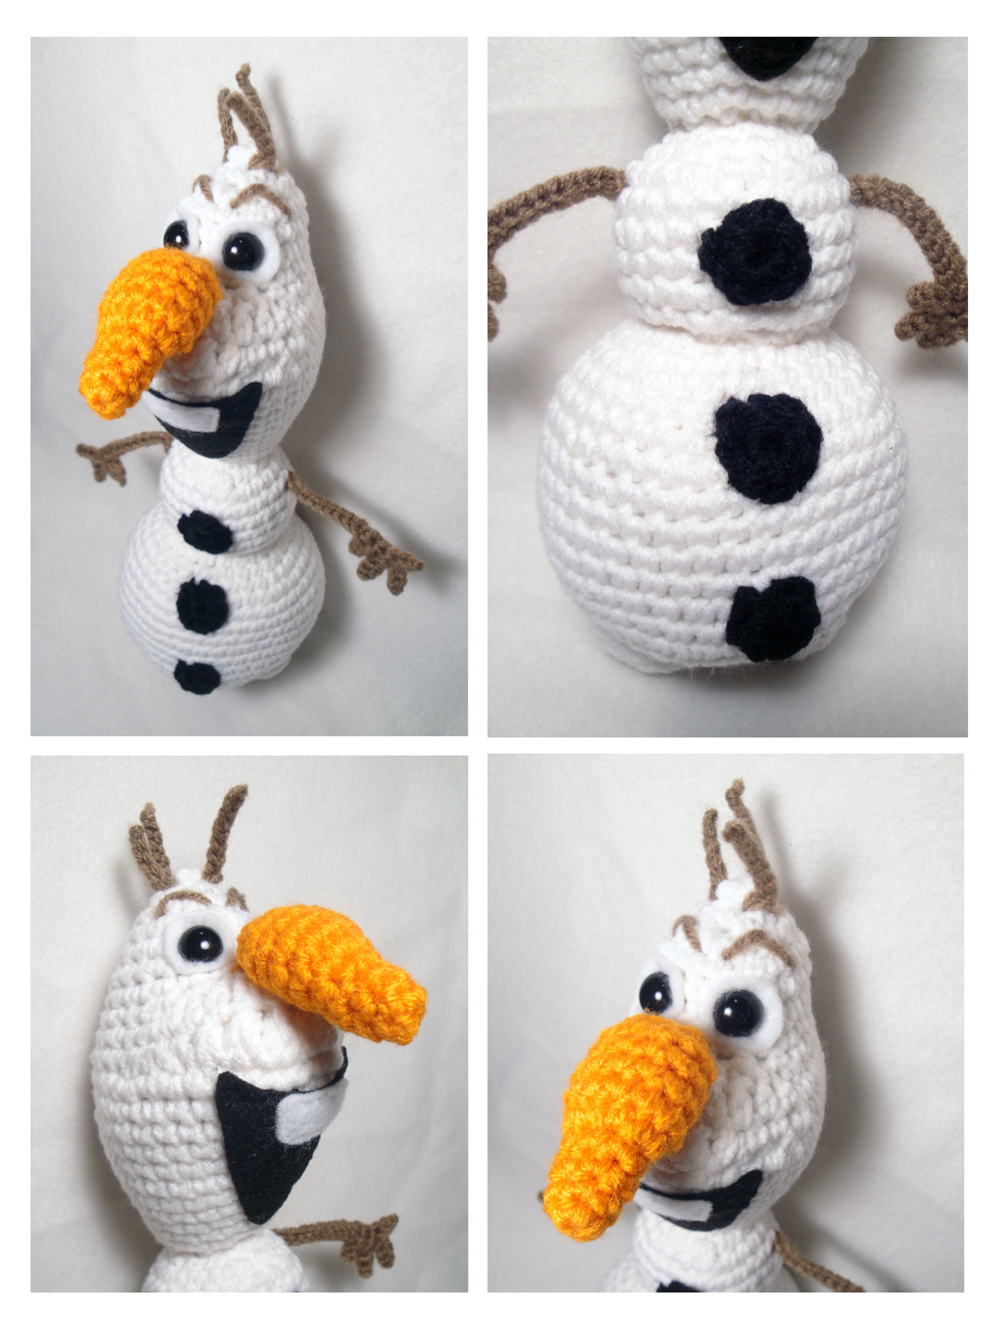 Crochet Free Pattern Olaf : Olaf - Amigurumi :: Frozen by stina-marie on DeviantArt